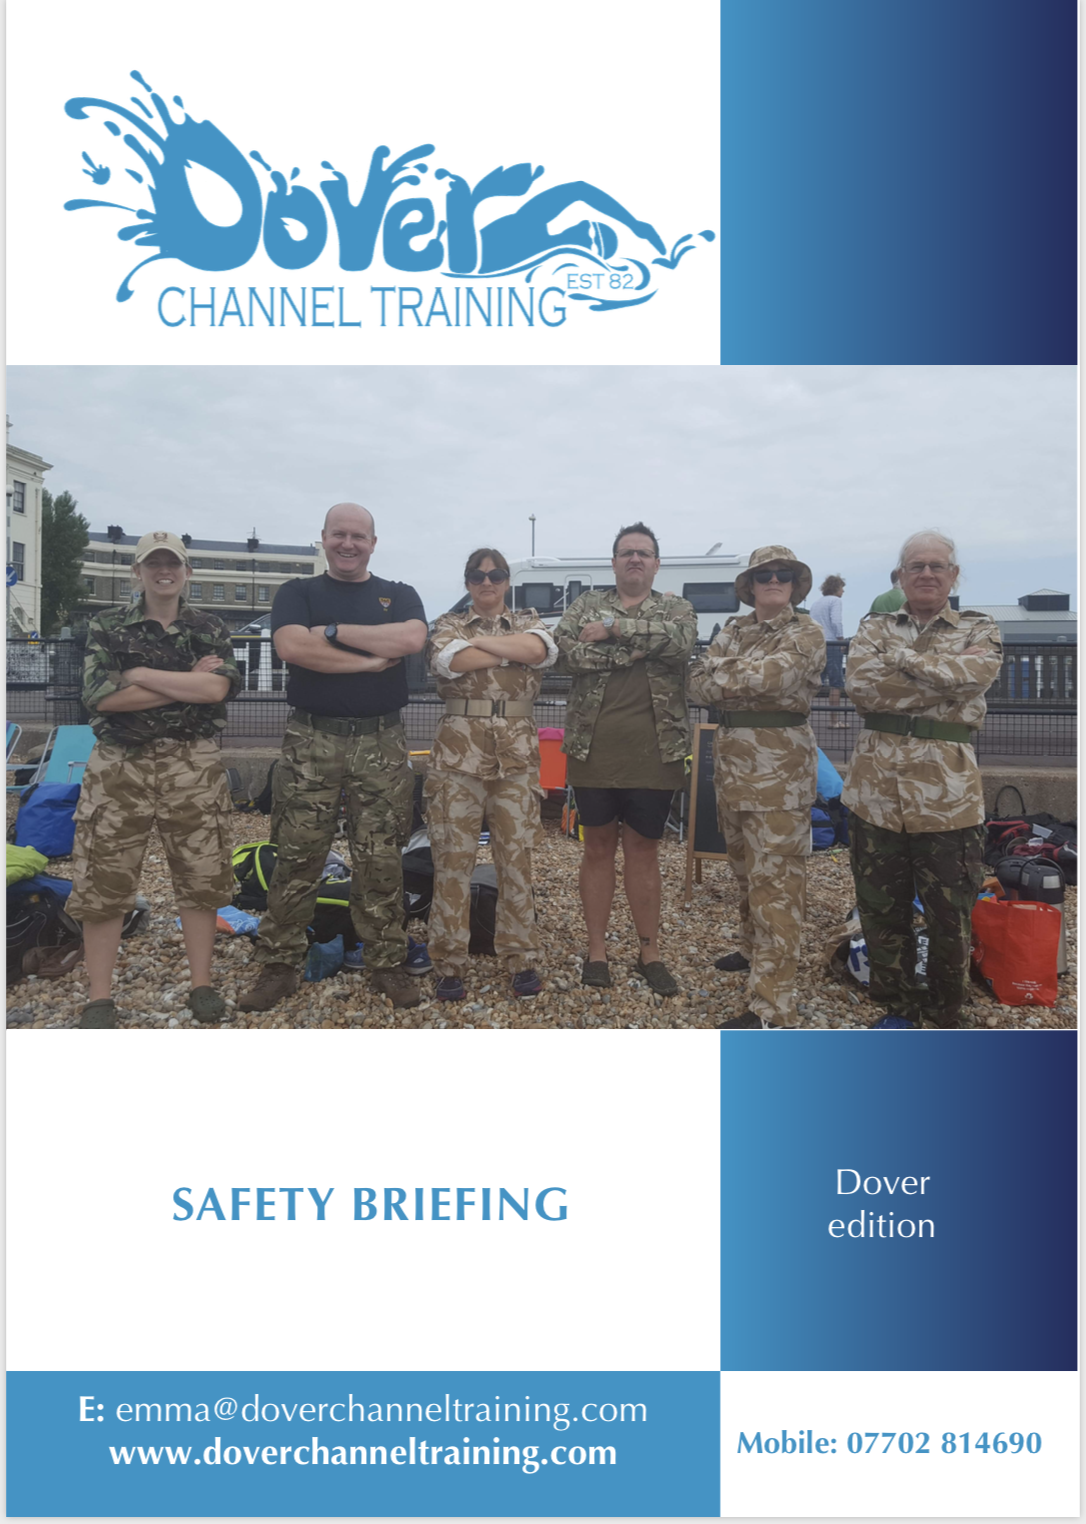 Safety briefing document